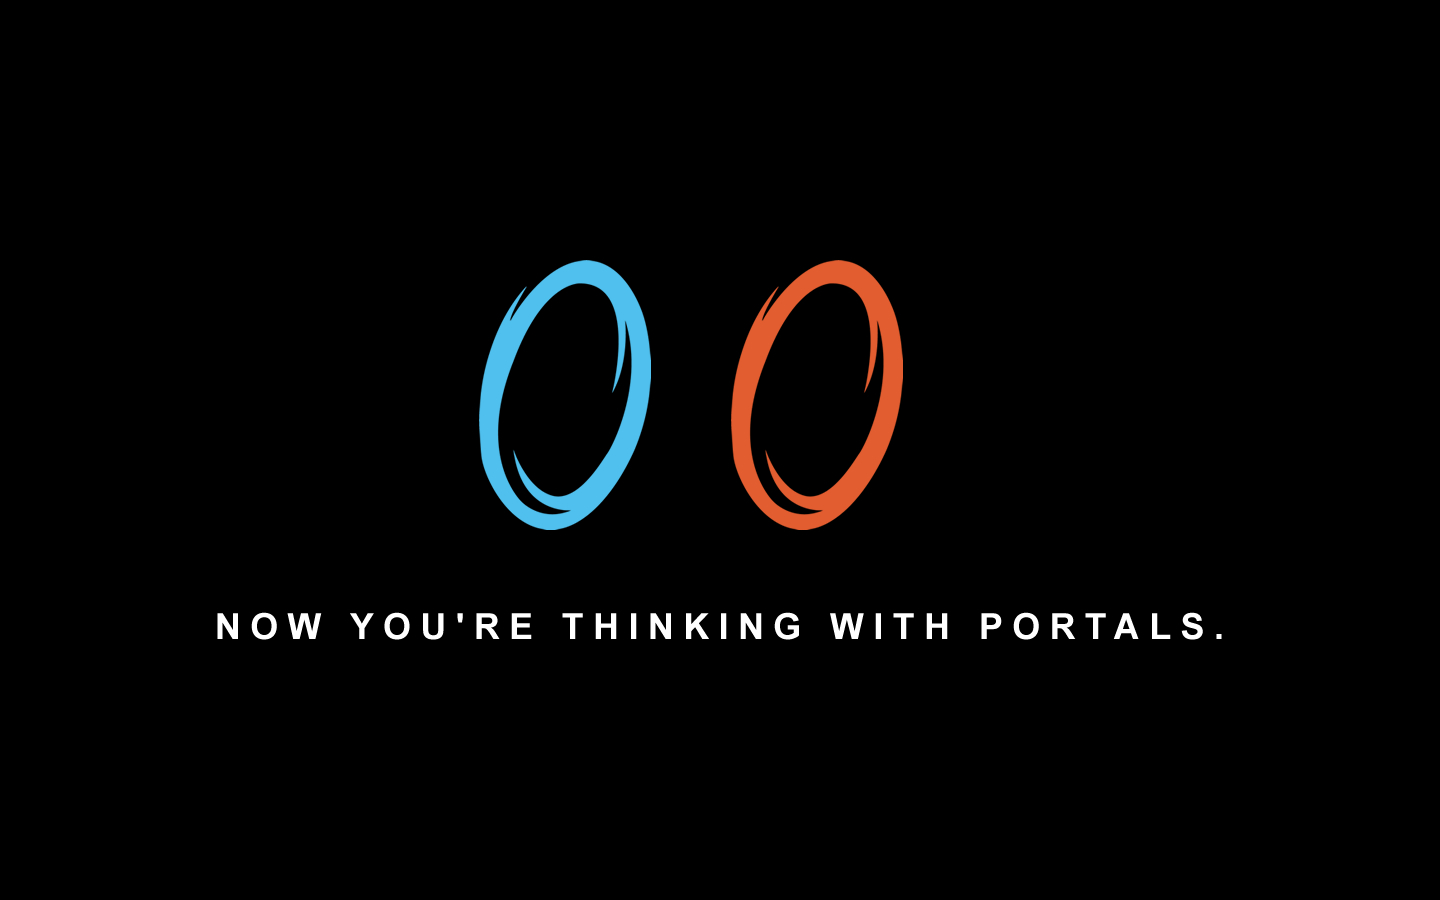 Portal Computer Wallpapers Desktop Backgrounds 1440x900 ID24525 1440x900